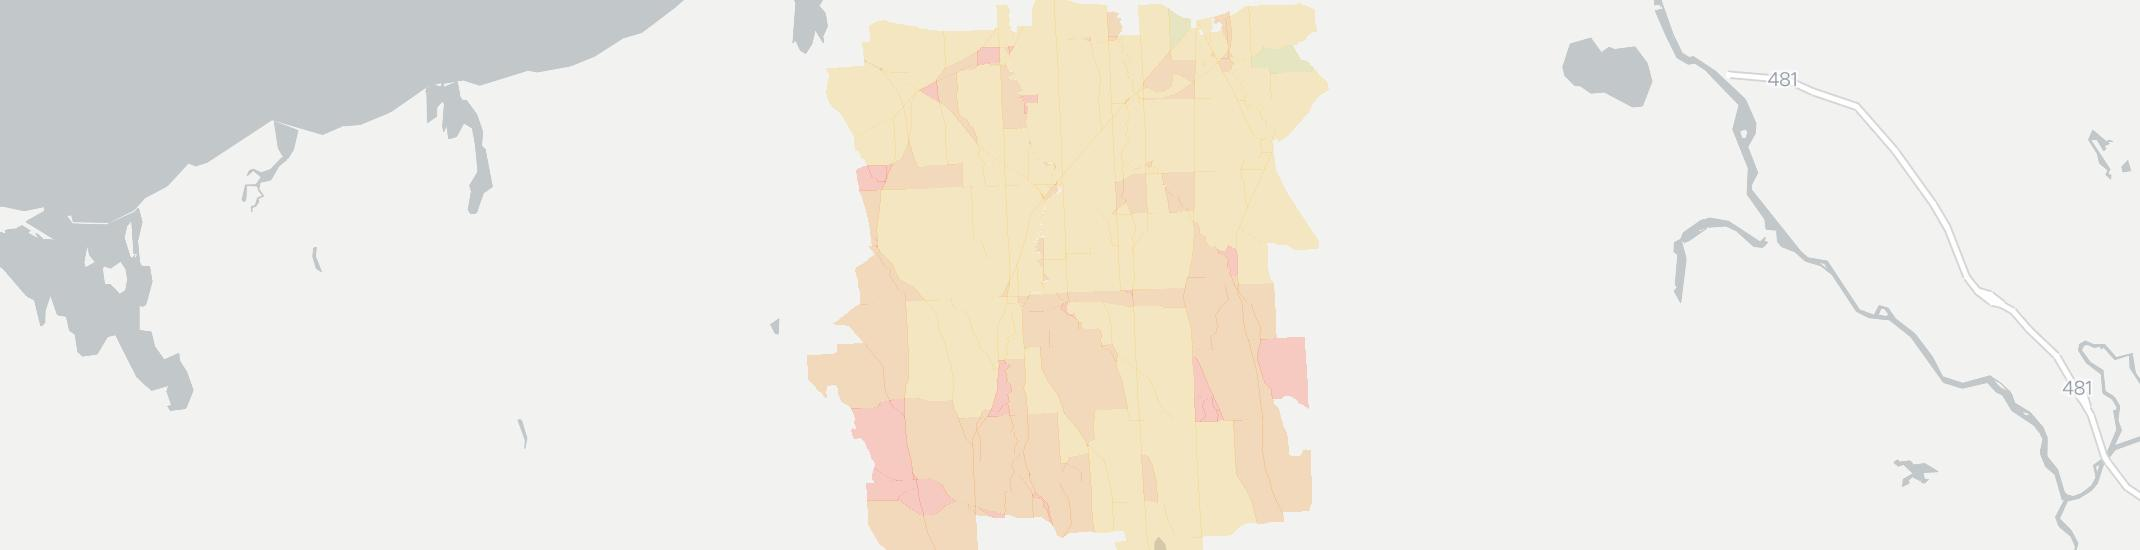 Martville Internet Competition Map. Click for interactive map.